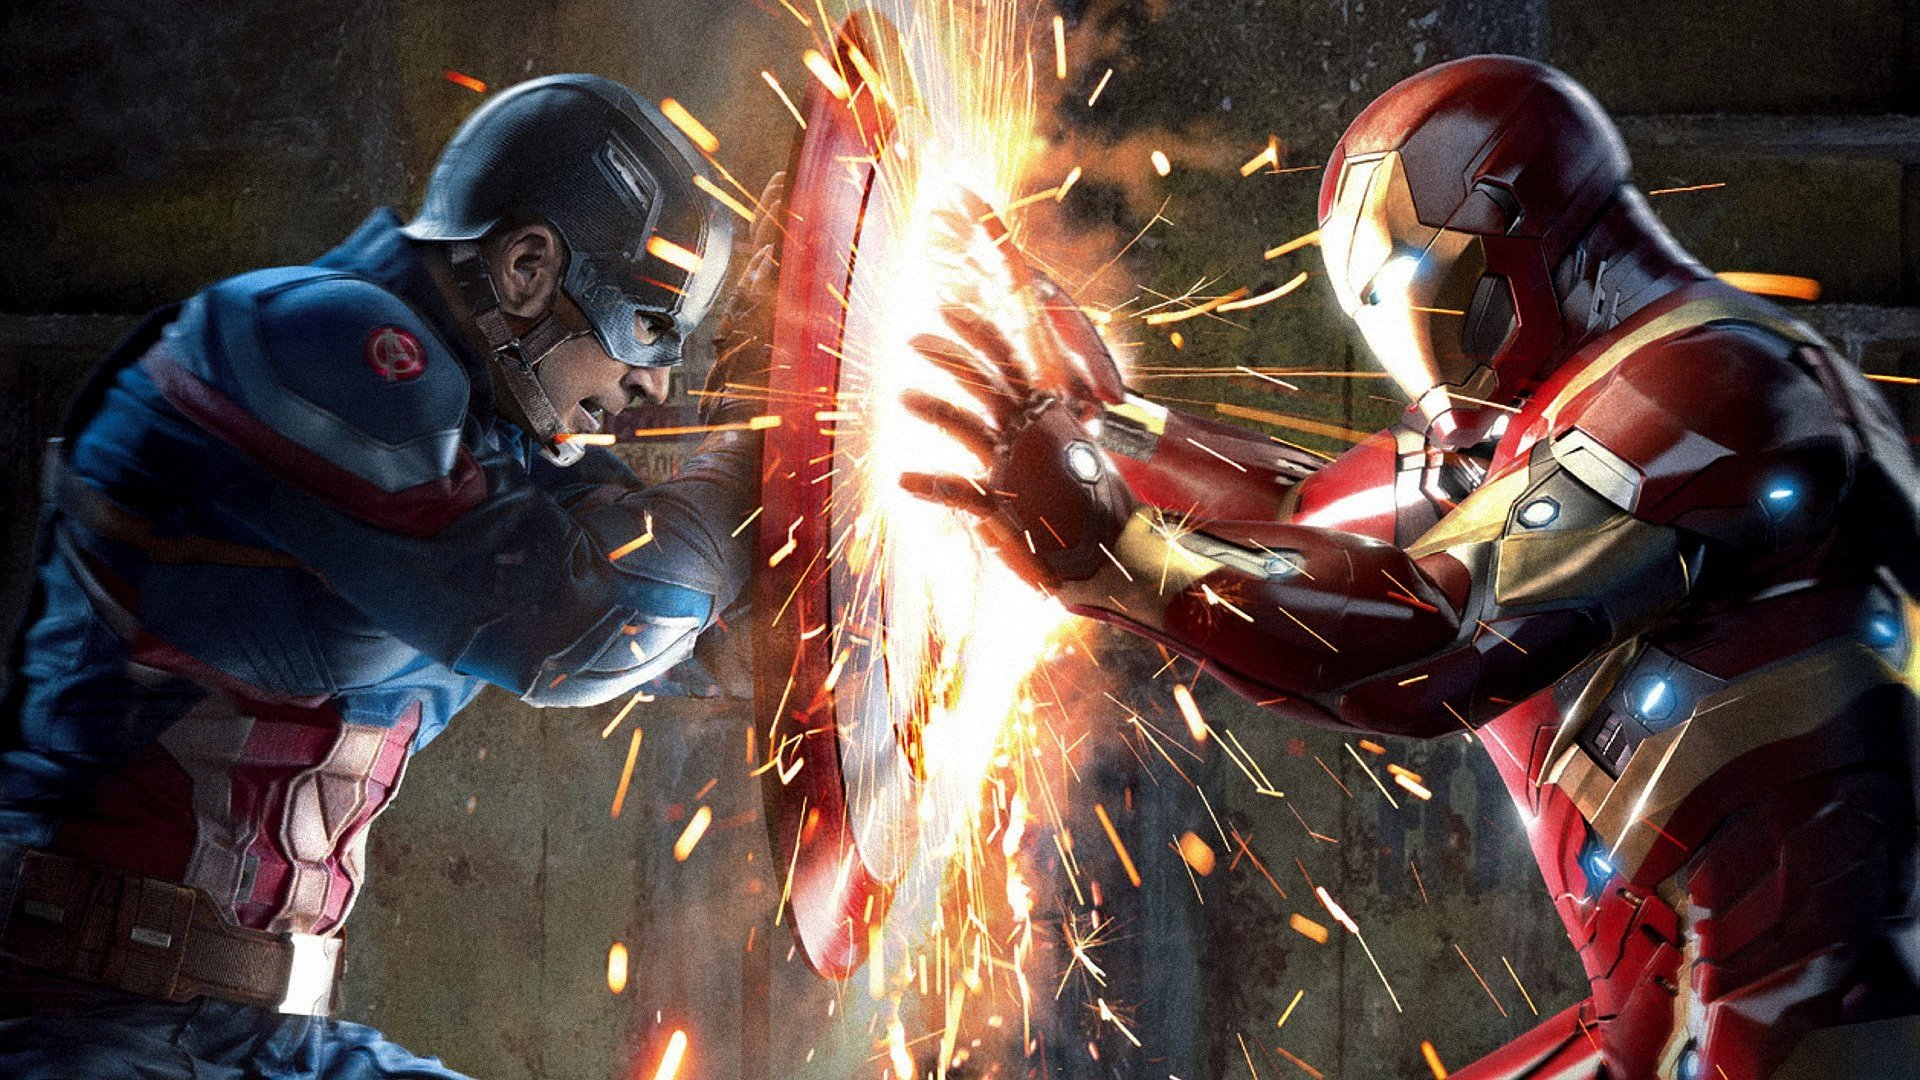 Hd wallpaper of captain america - Captain America Iron Man Hd Wallpaper Background Id 696684